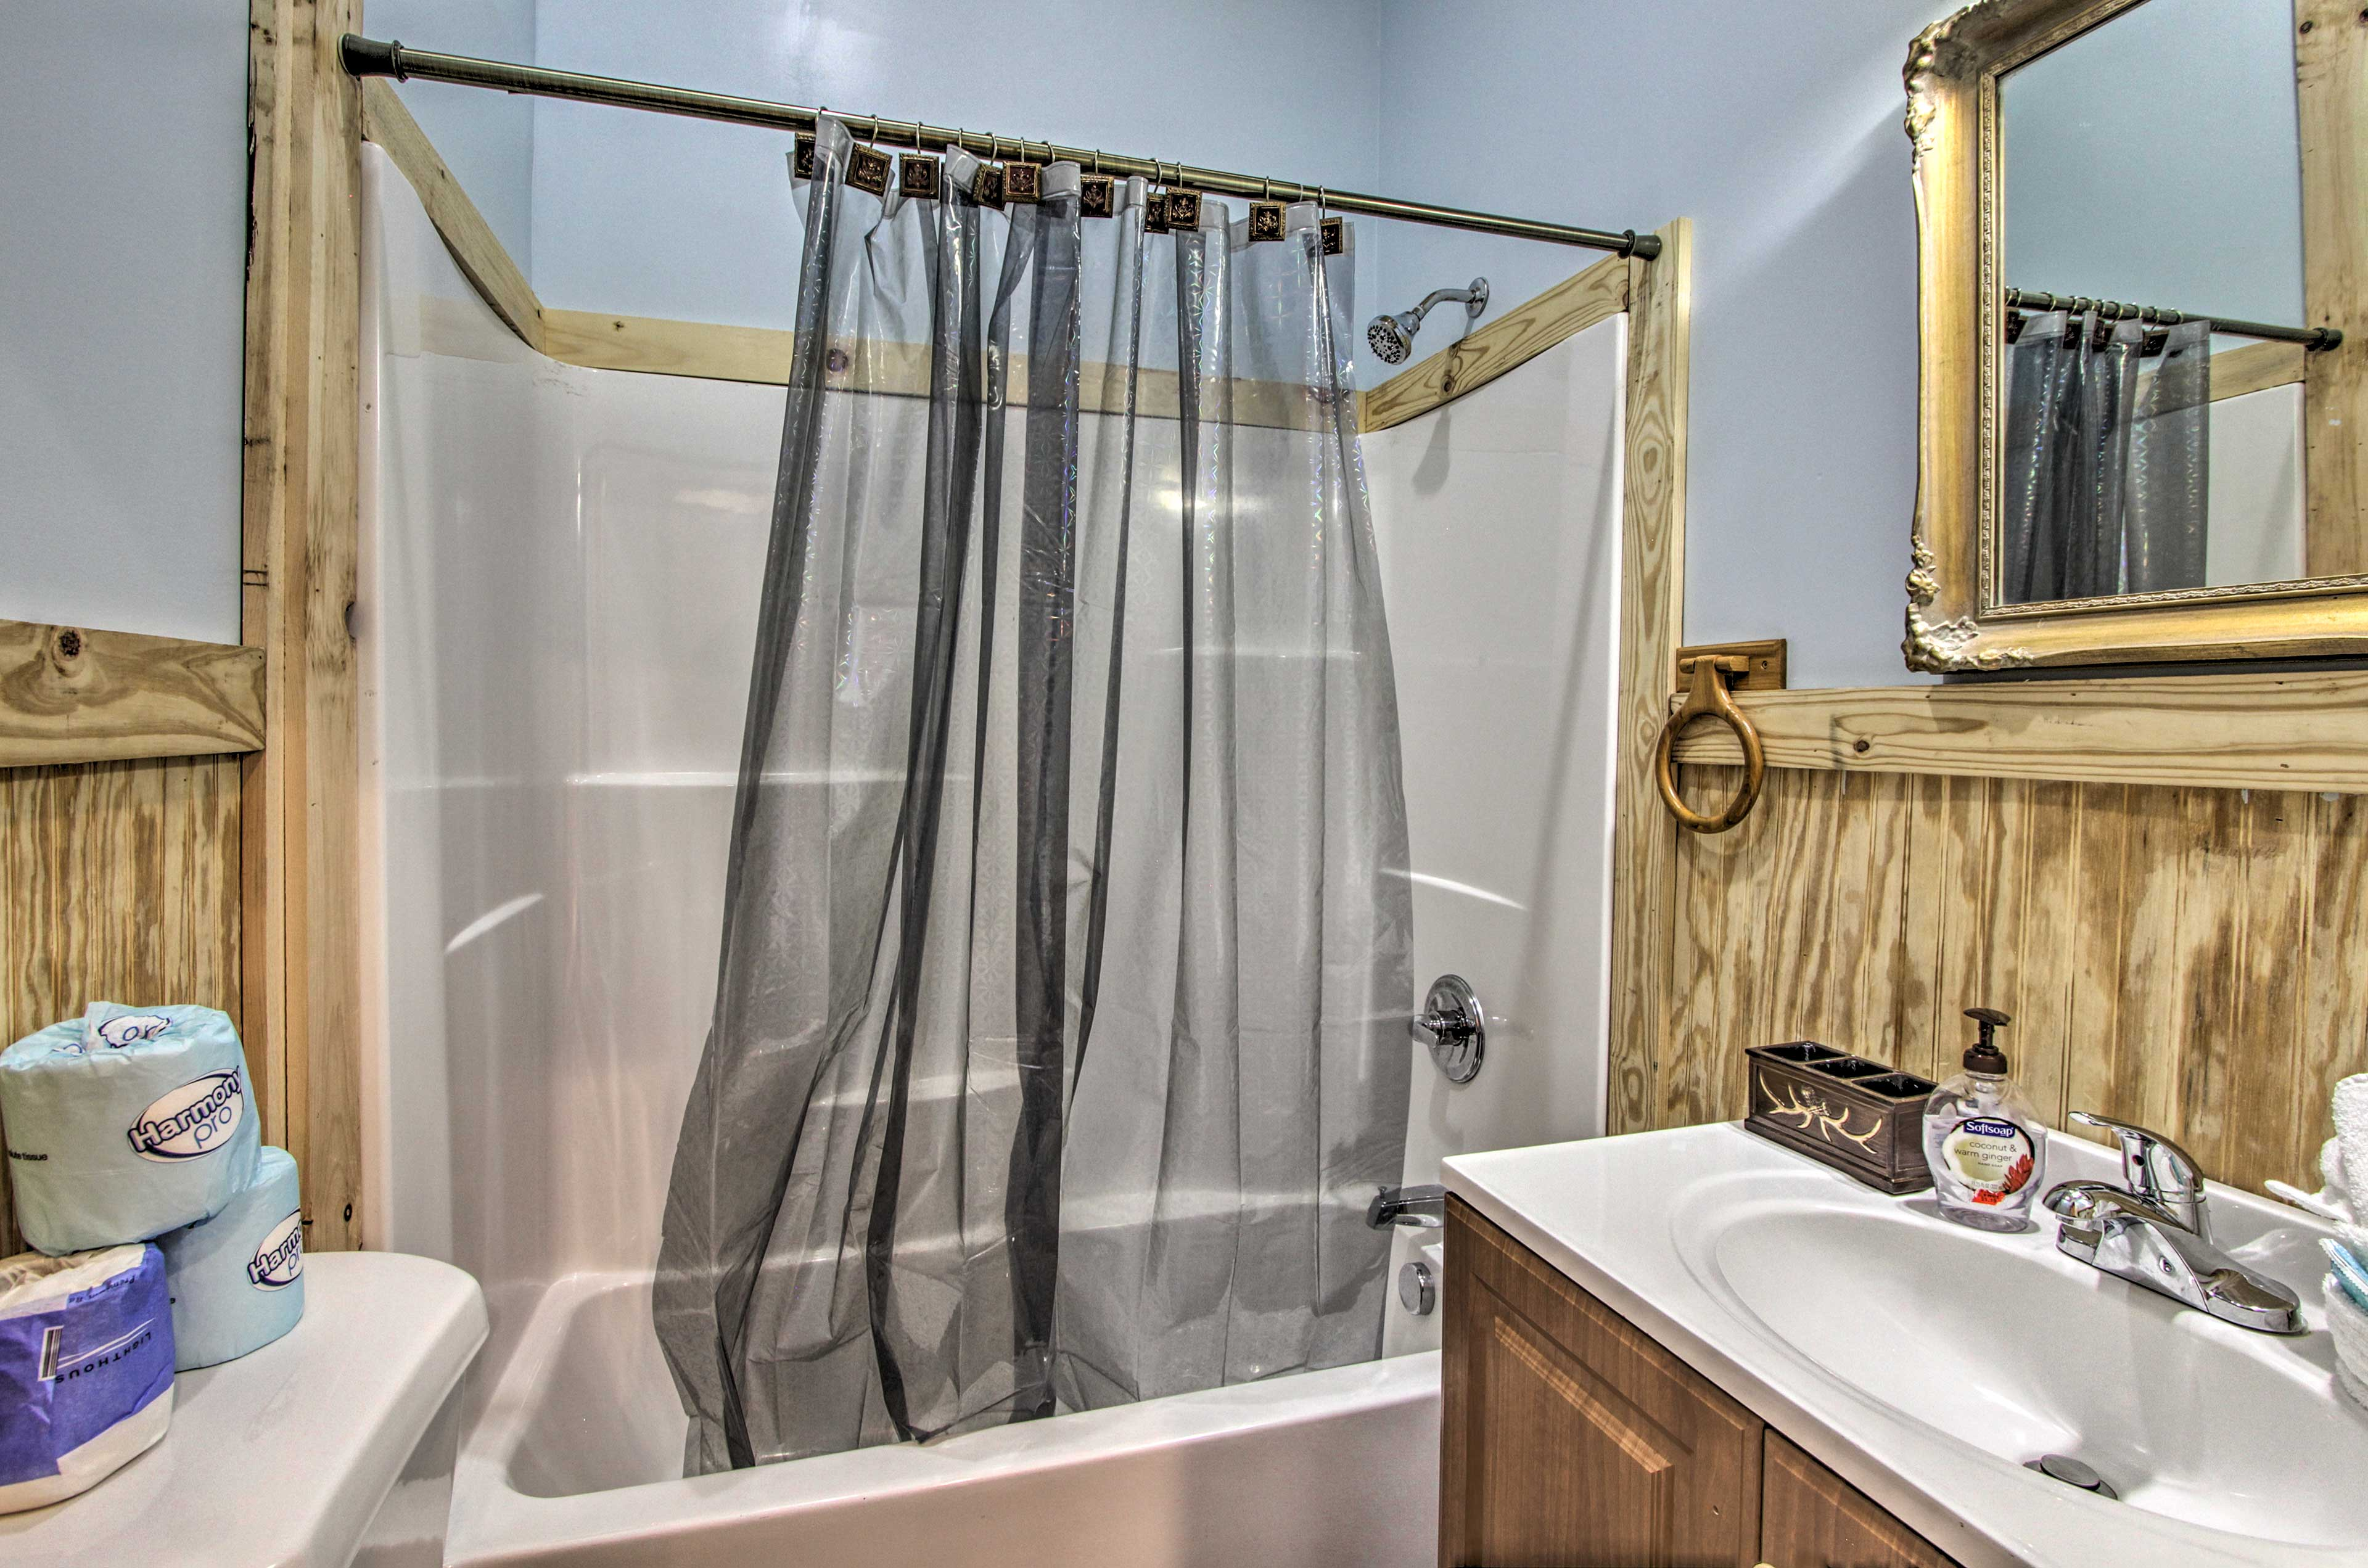 Clean up in the en-suite bathroom with a shower/tub combo!